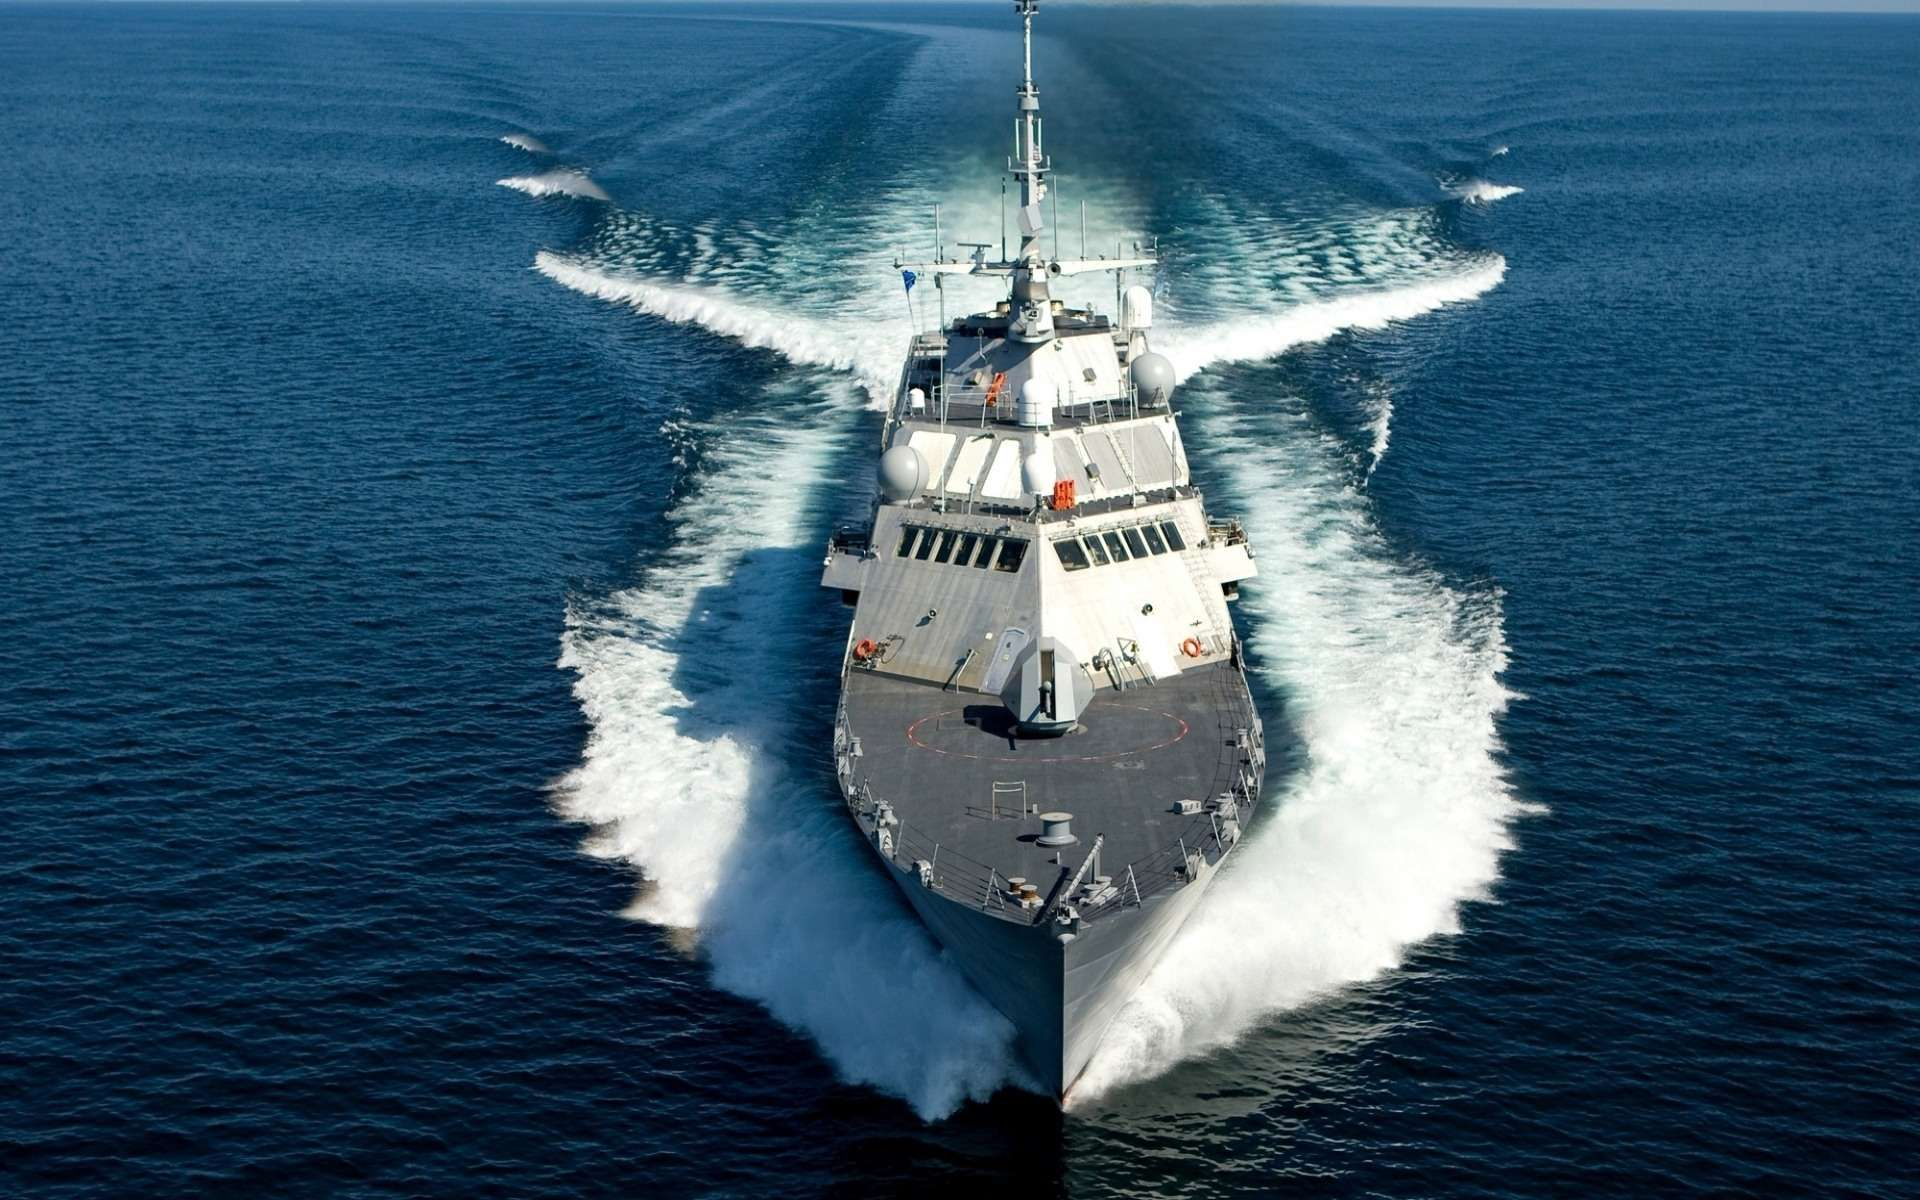 Fighting Ship Wallpaper 1920 1200 Http Nirhara Com Category Wallpapers Ship Indian Navy Ships Navy Day Navy Ships